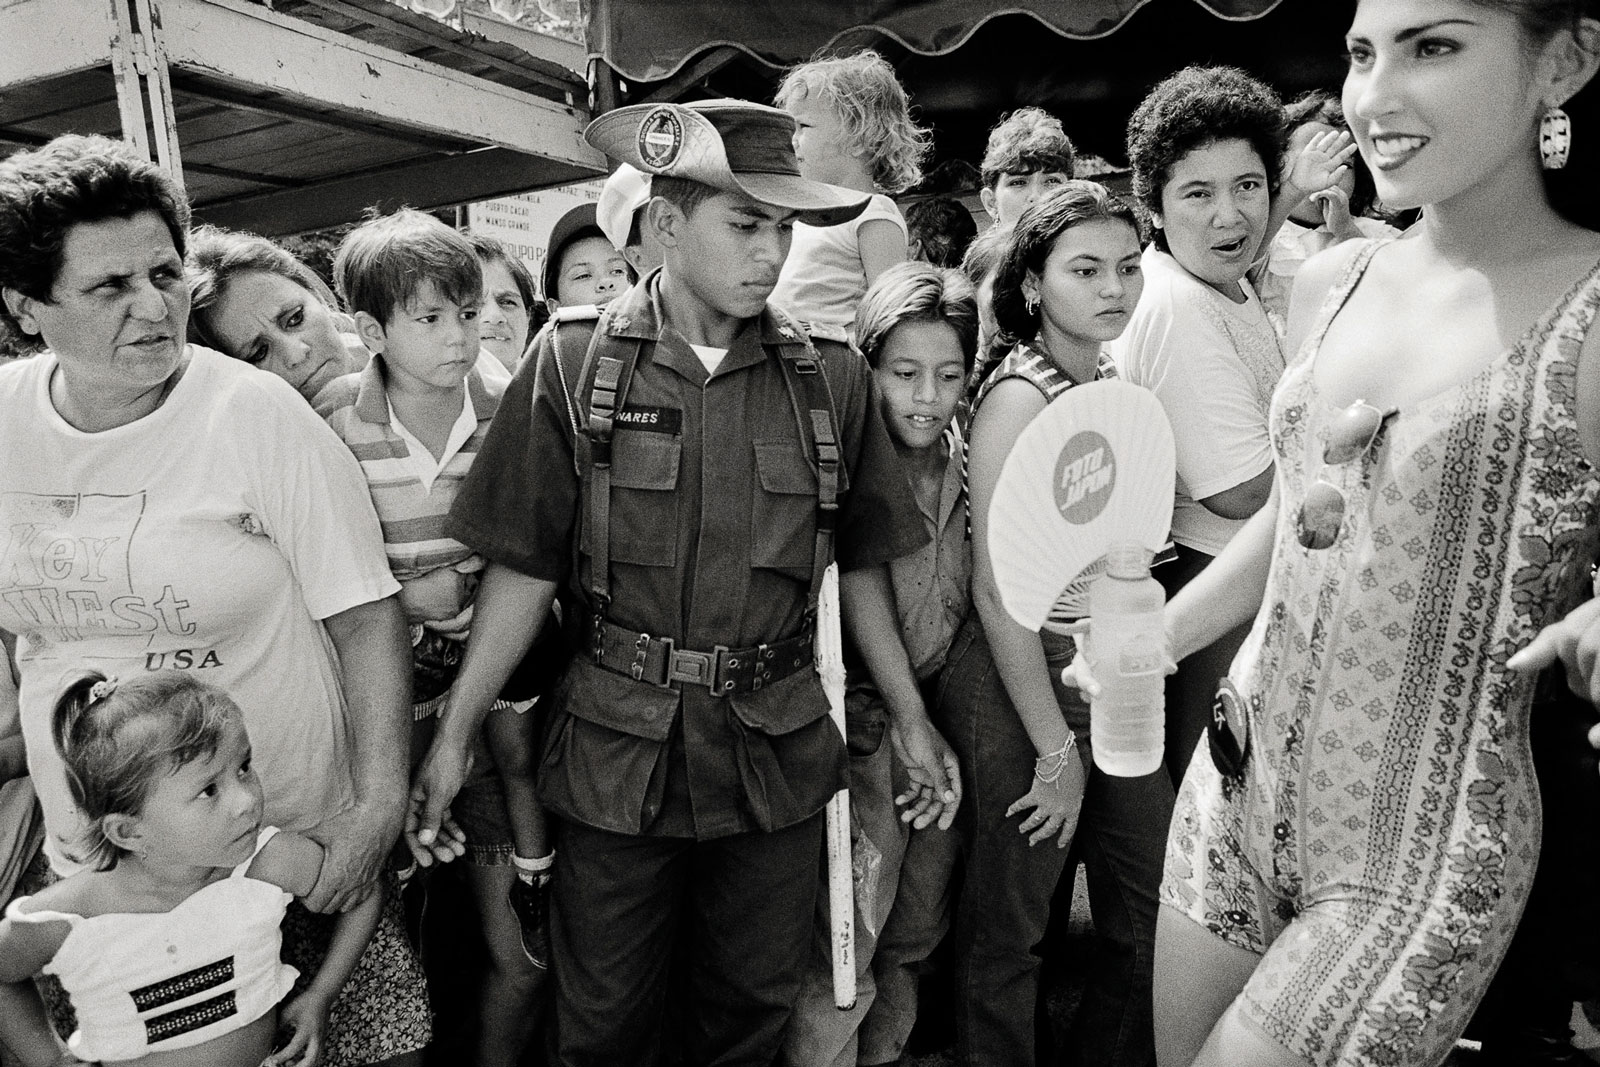 <i>Scrutiny</i> (1995) A candidate for national Miss Tourism passes through the crowd in Girardot.